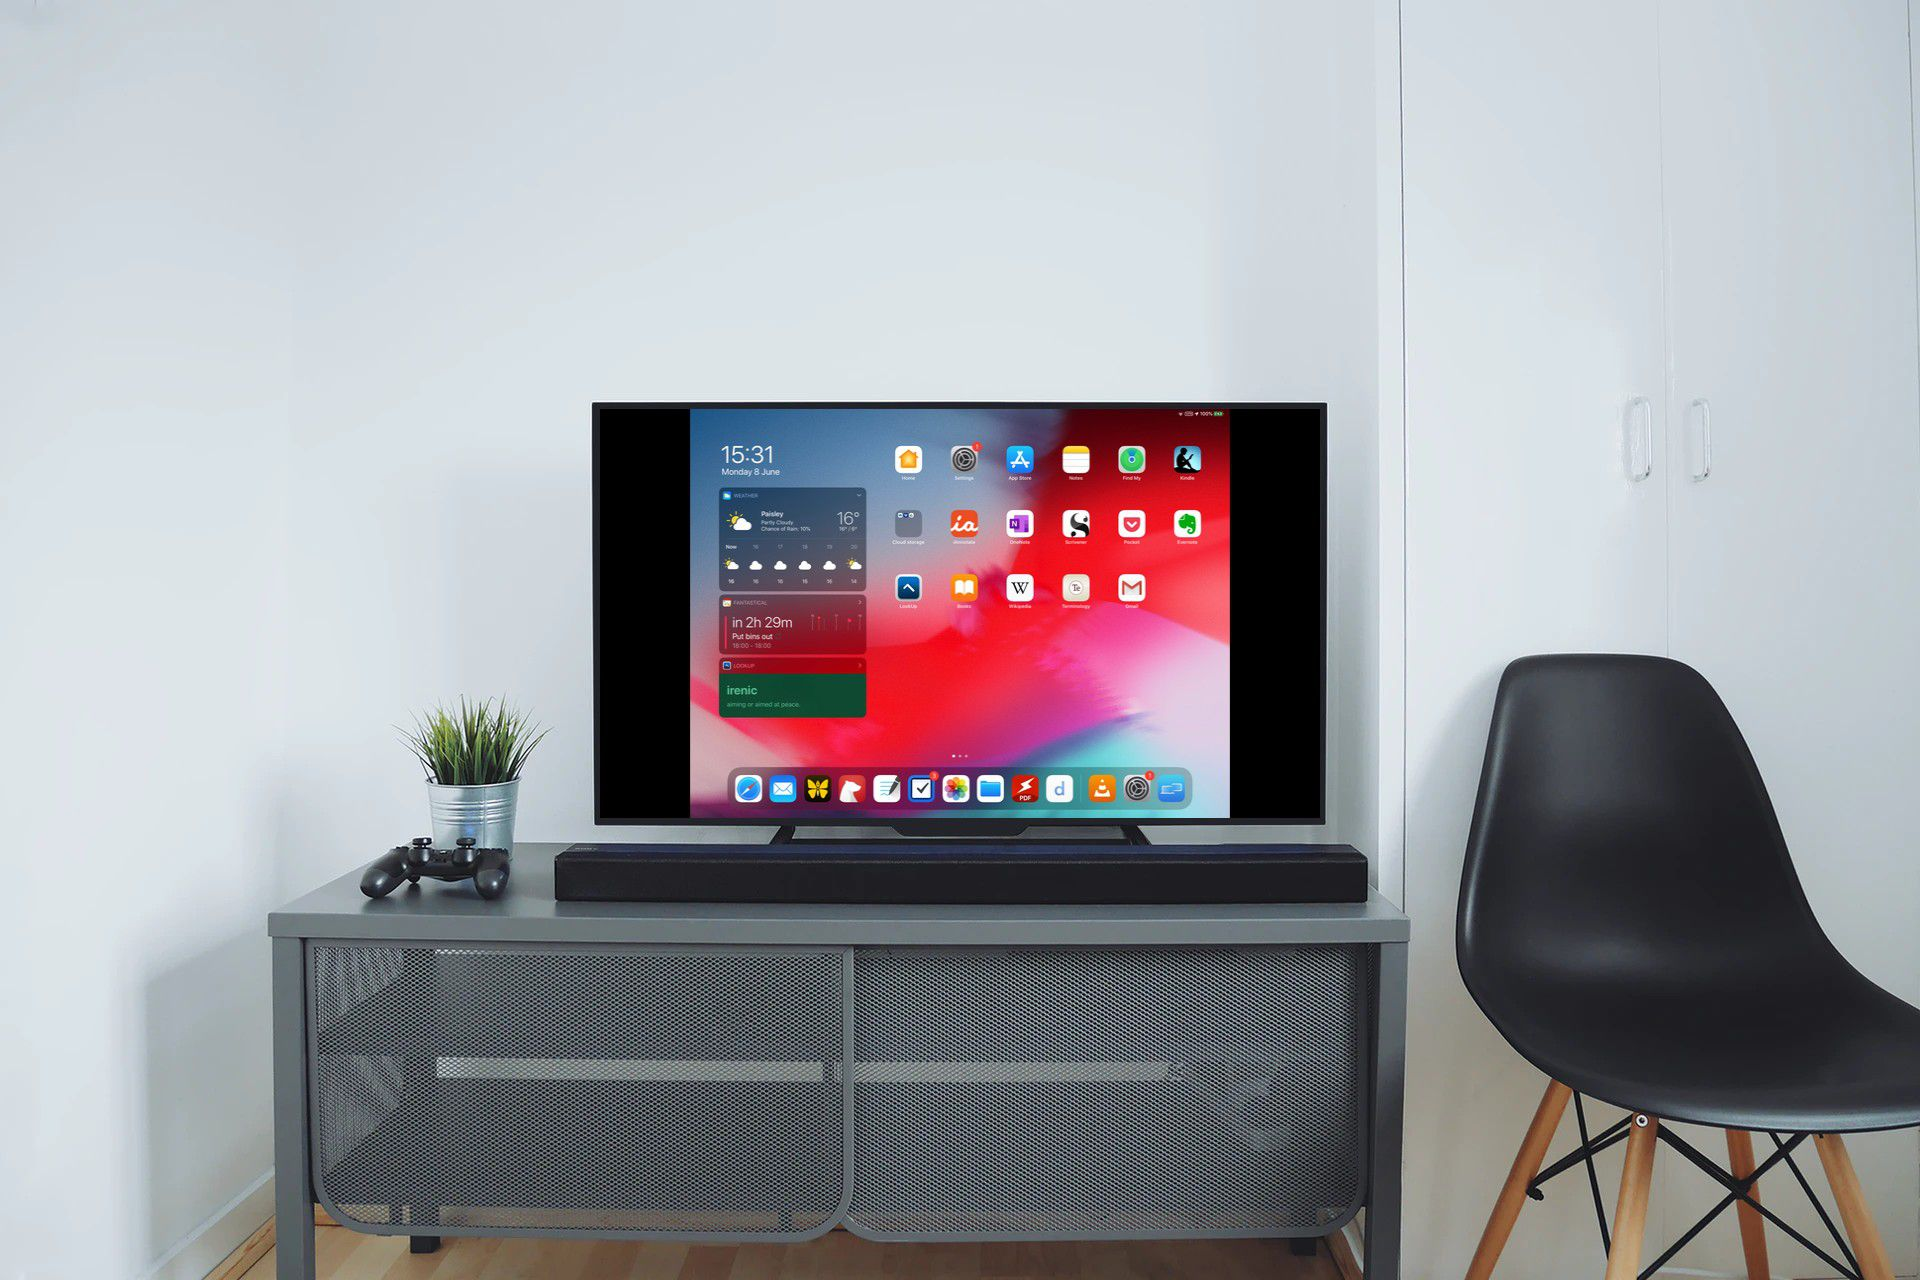 How to Mirror Your iPhone or iPad Screen on Apple TV or a Smart TV -  MacRumors